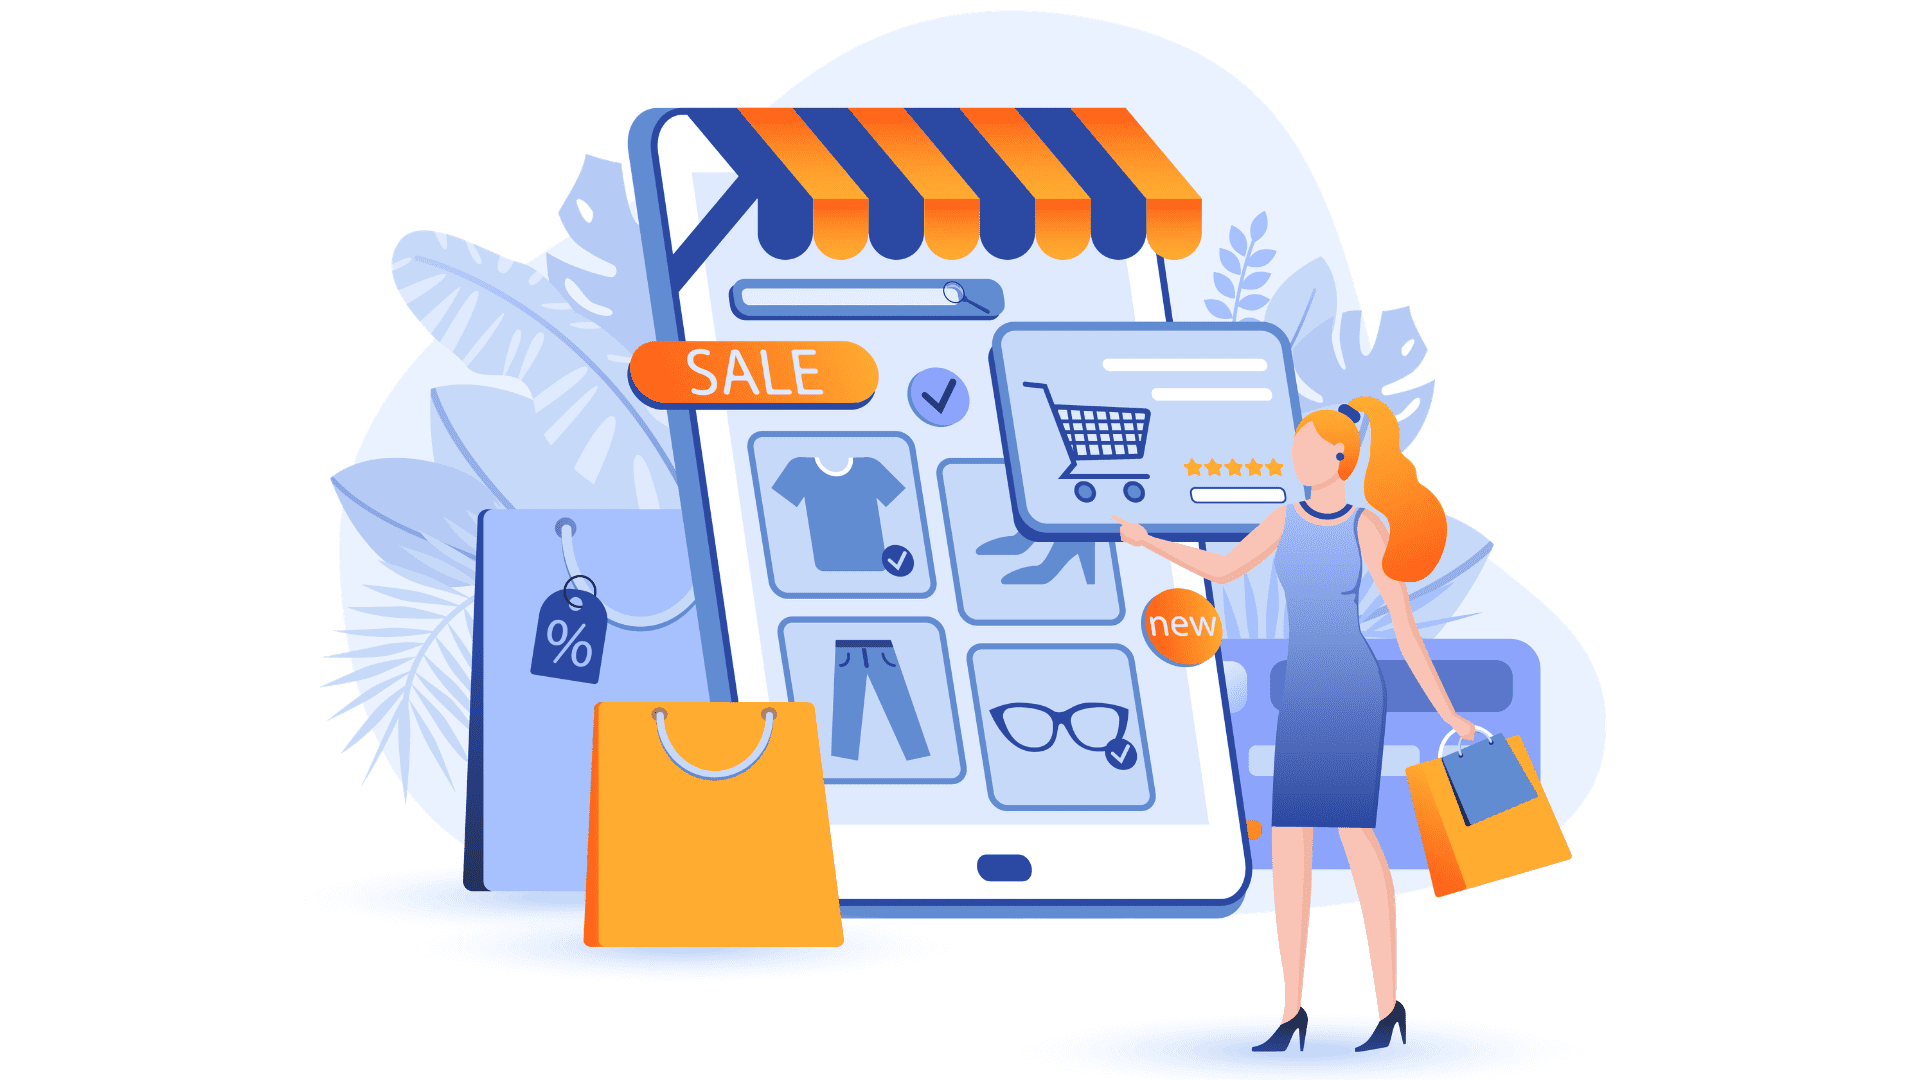 enriched with ecommerce features